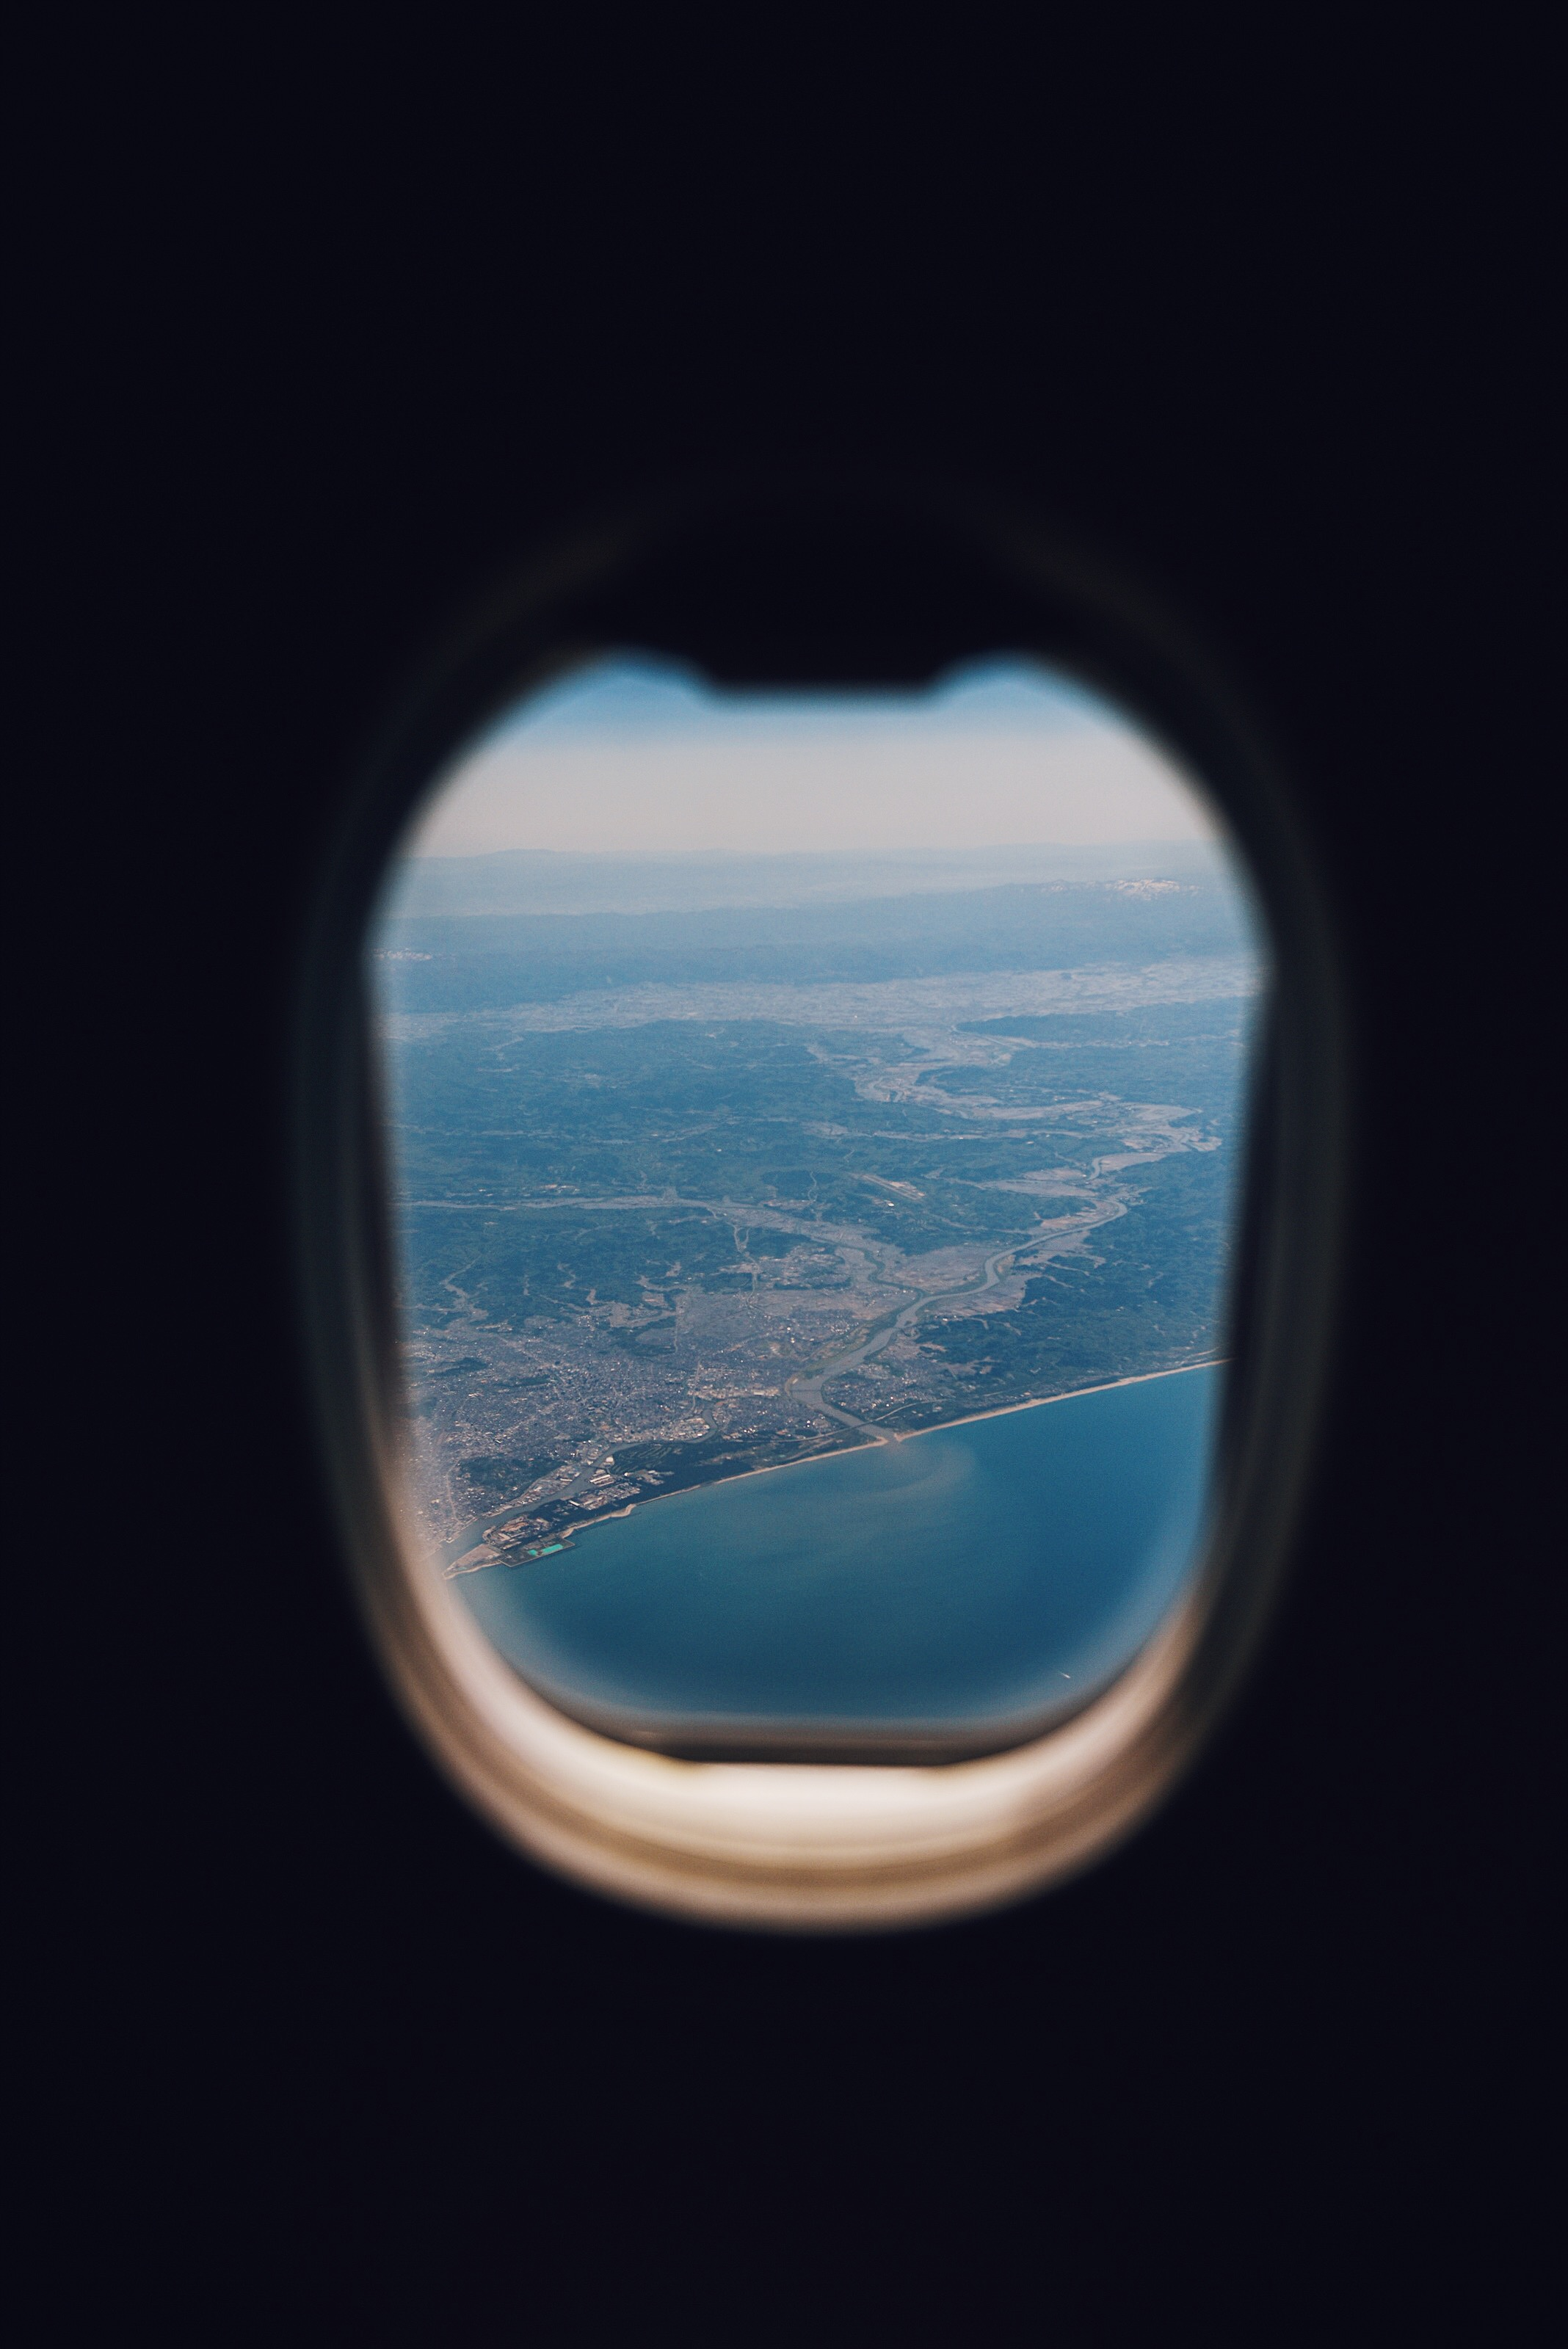 How To Download Wallpaper For Iphone 6 Air Plane Window Photo By Suhyeon Choi Choisyeon On